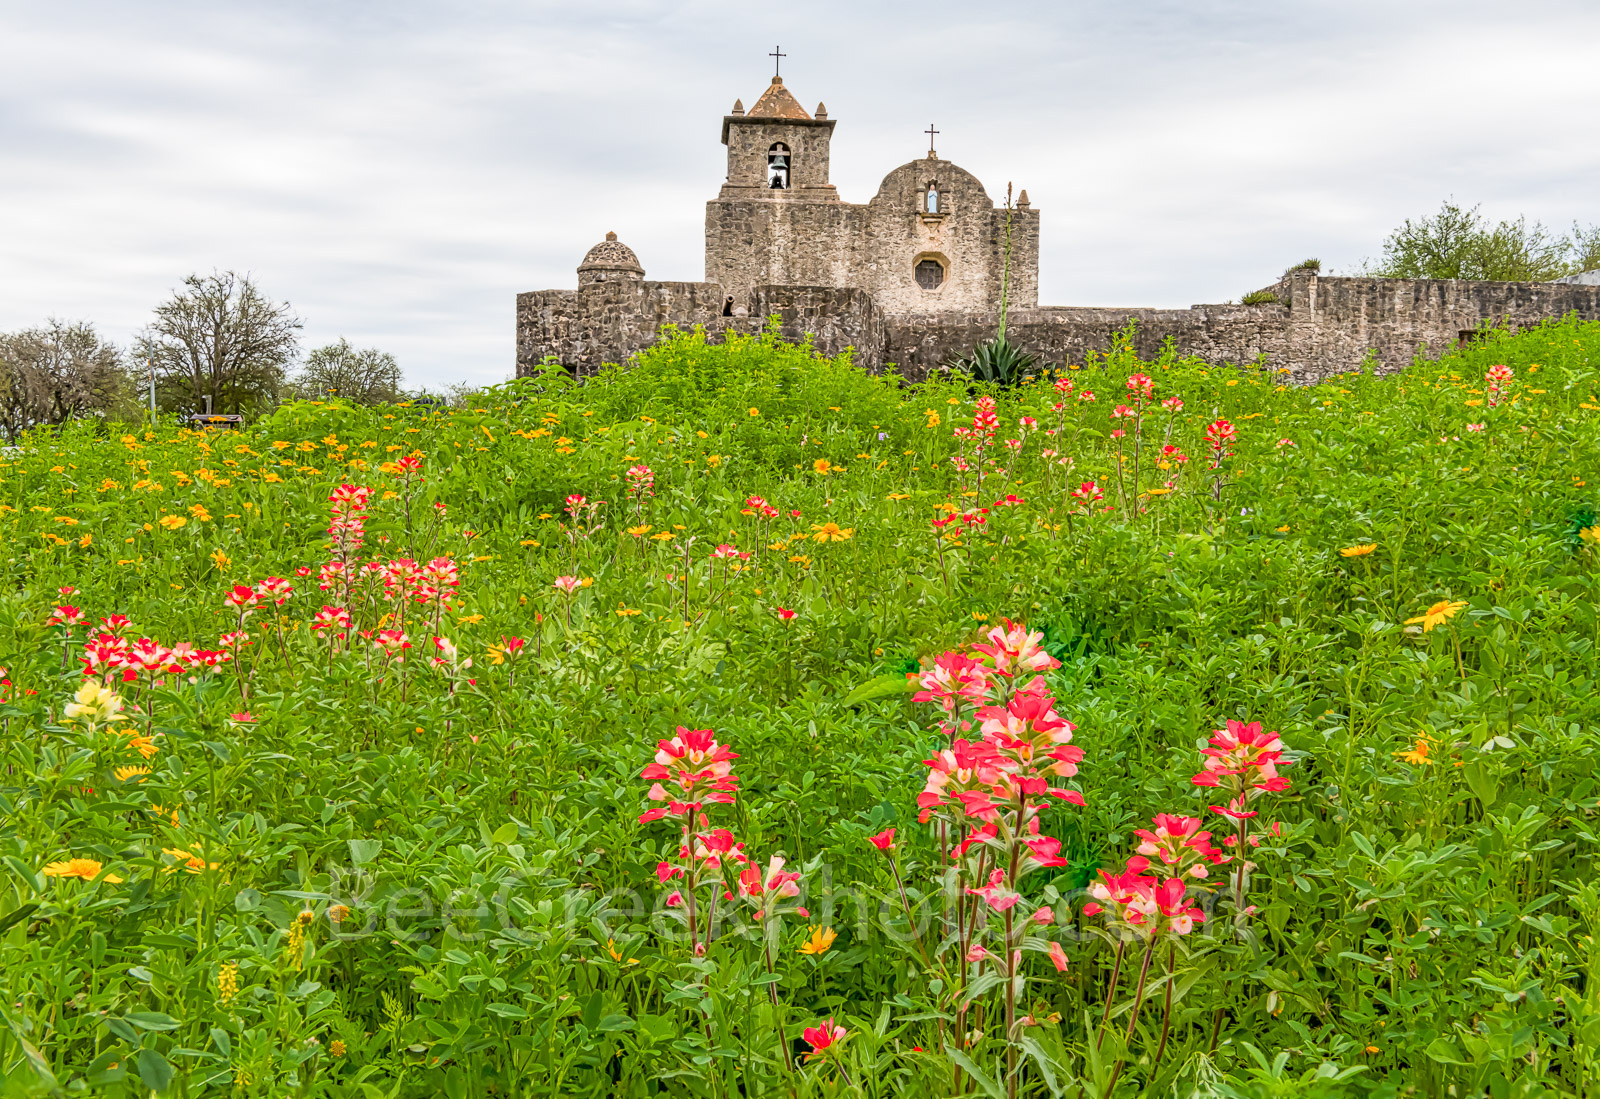 Presidio Goliad Wildflowers - After a few years not having wildflower the Presido La Bahi had some when we came by. This cloudy...